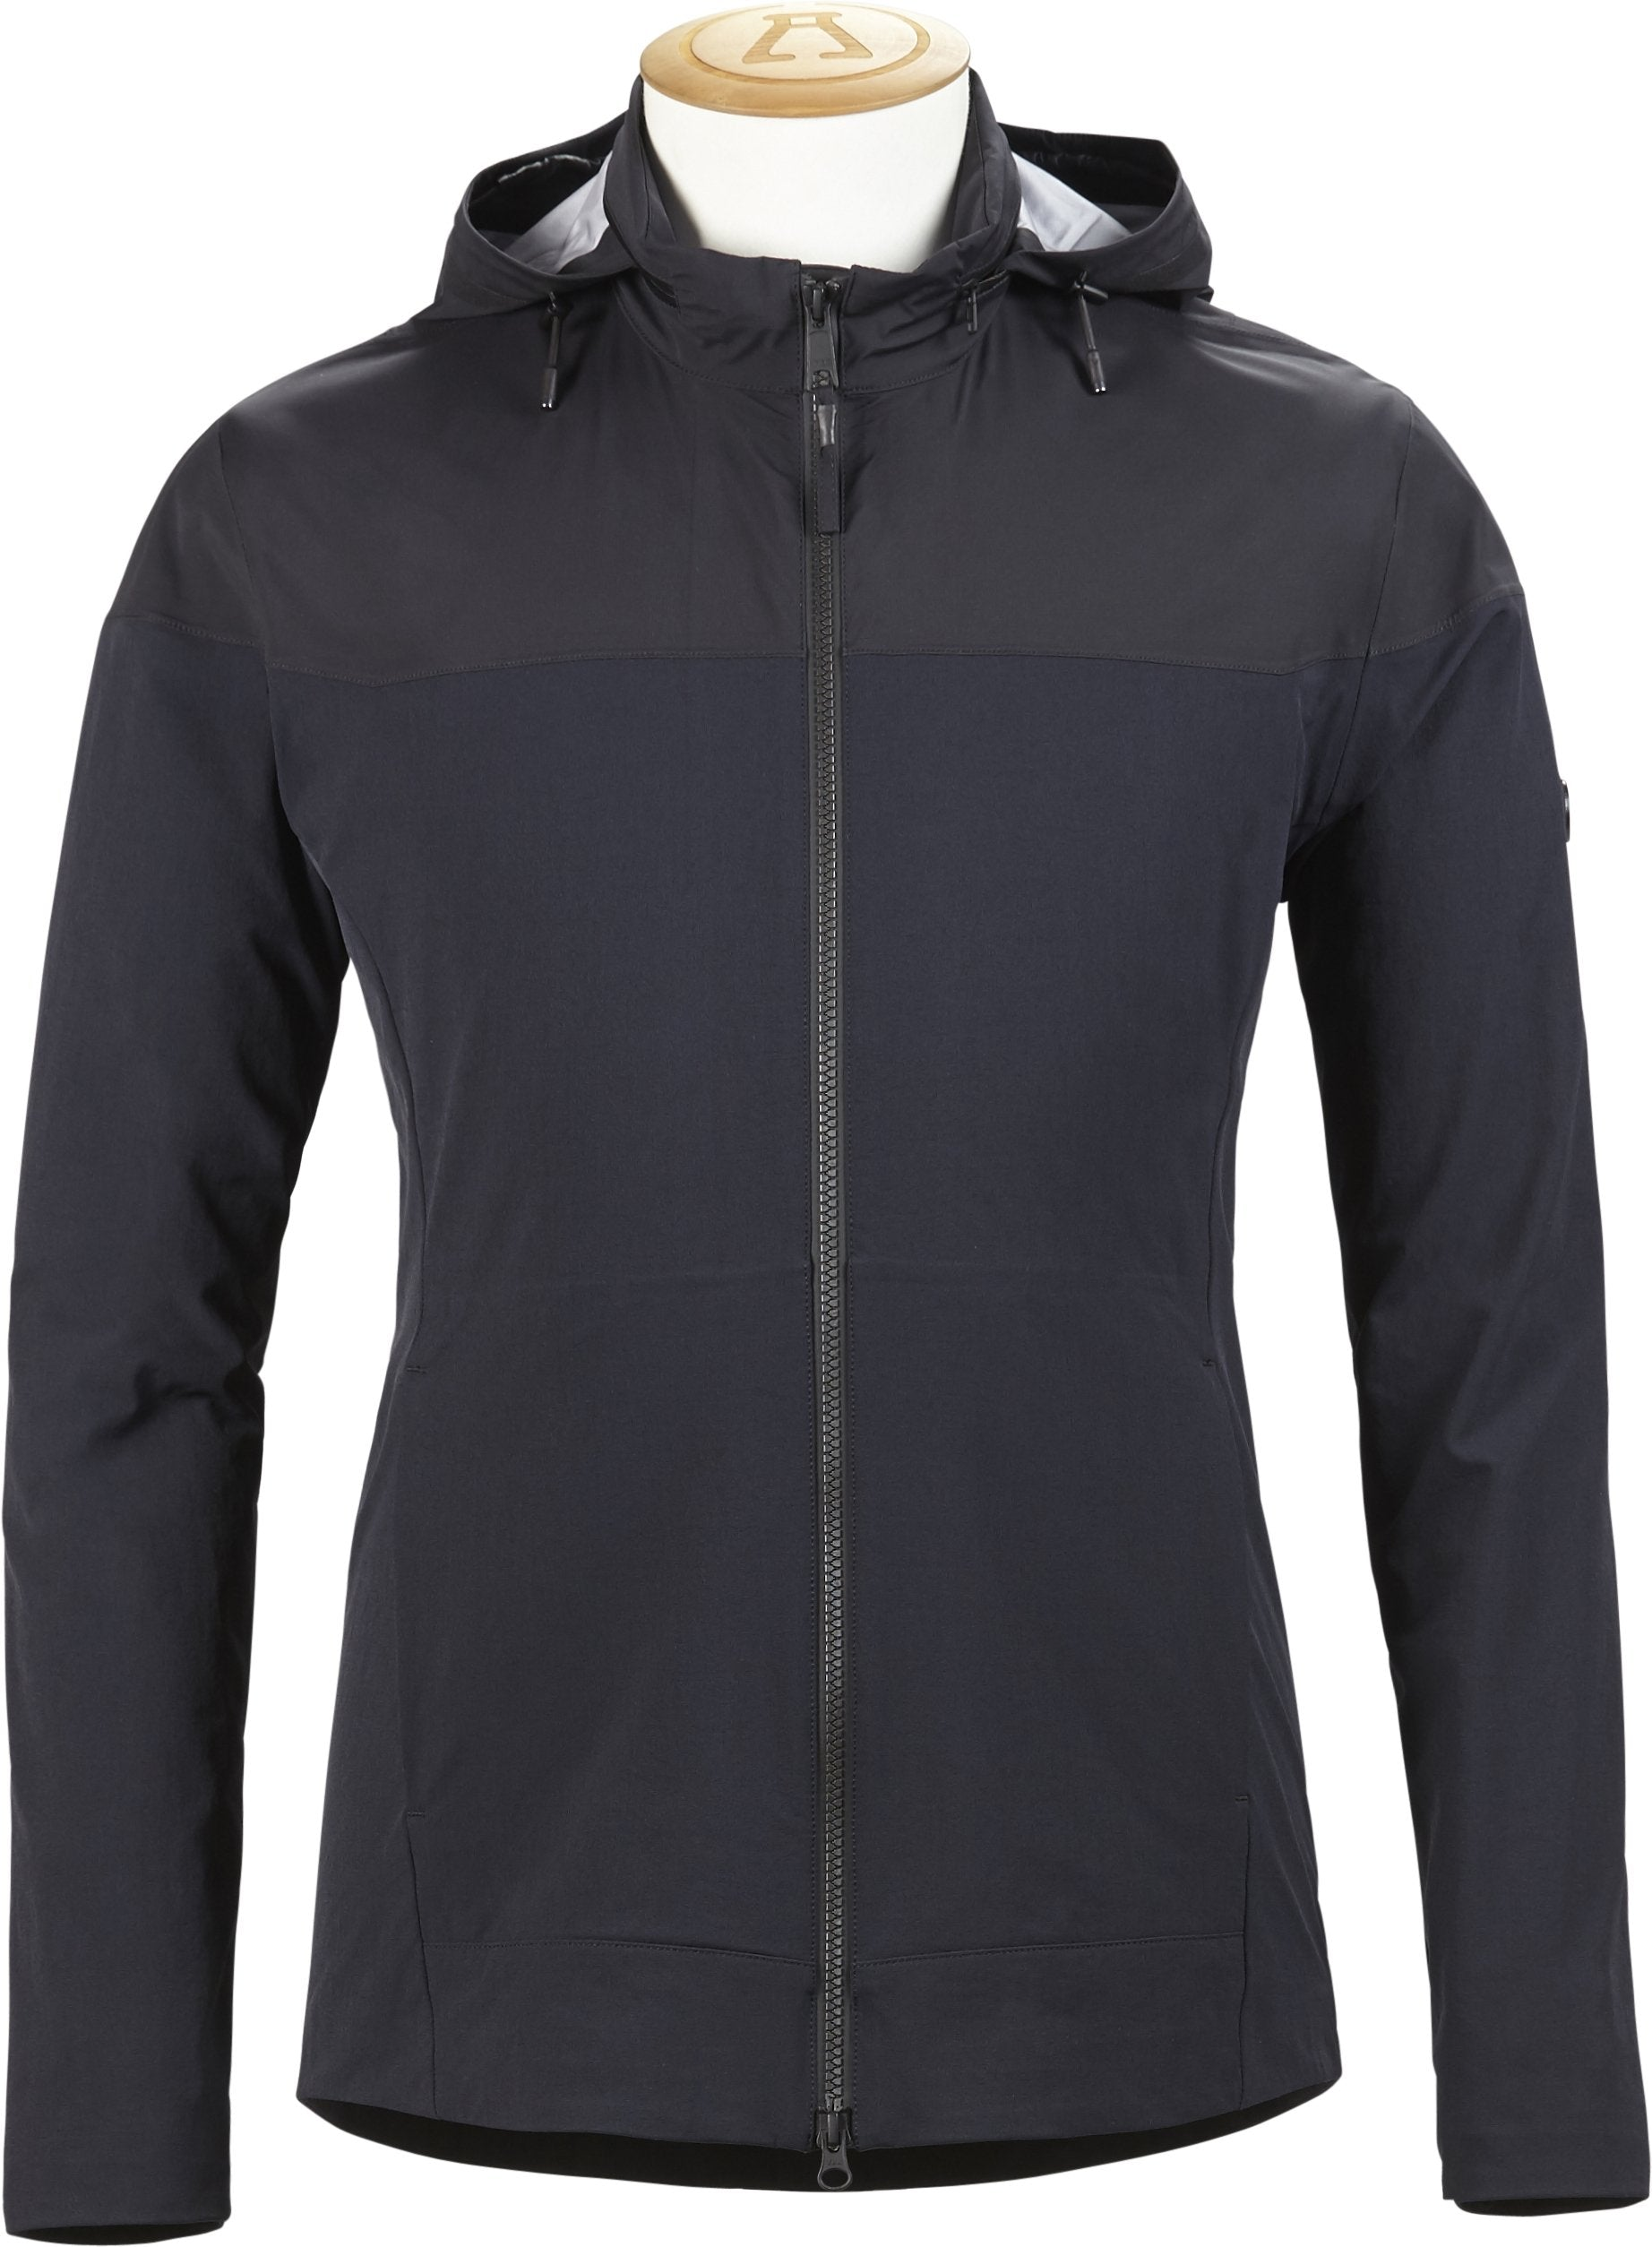 Alchemy Equipment AEM127 Pertex Lightweight Jacket